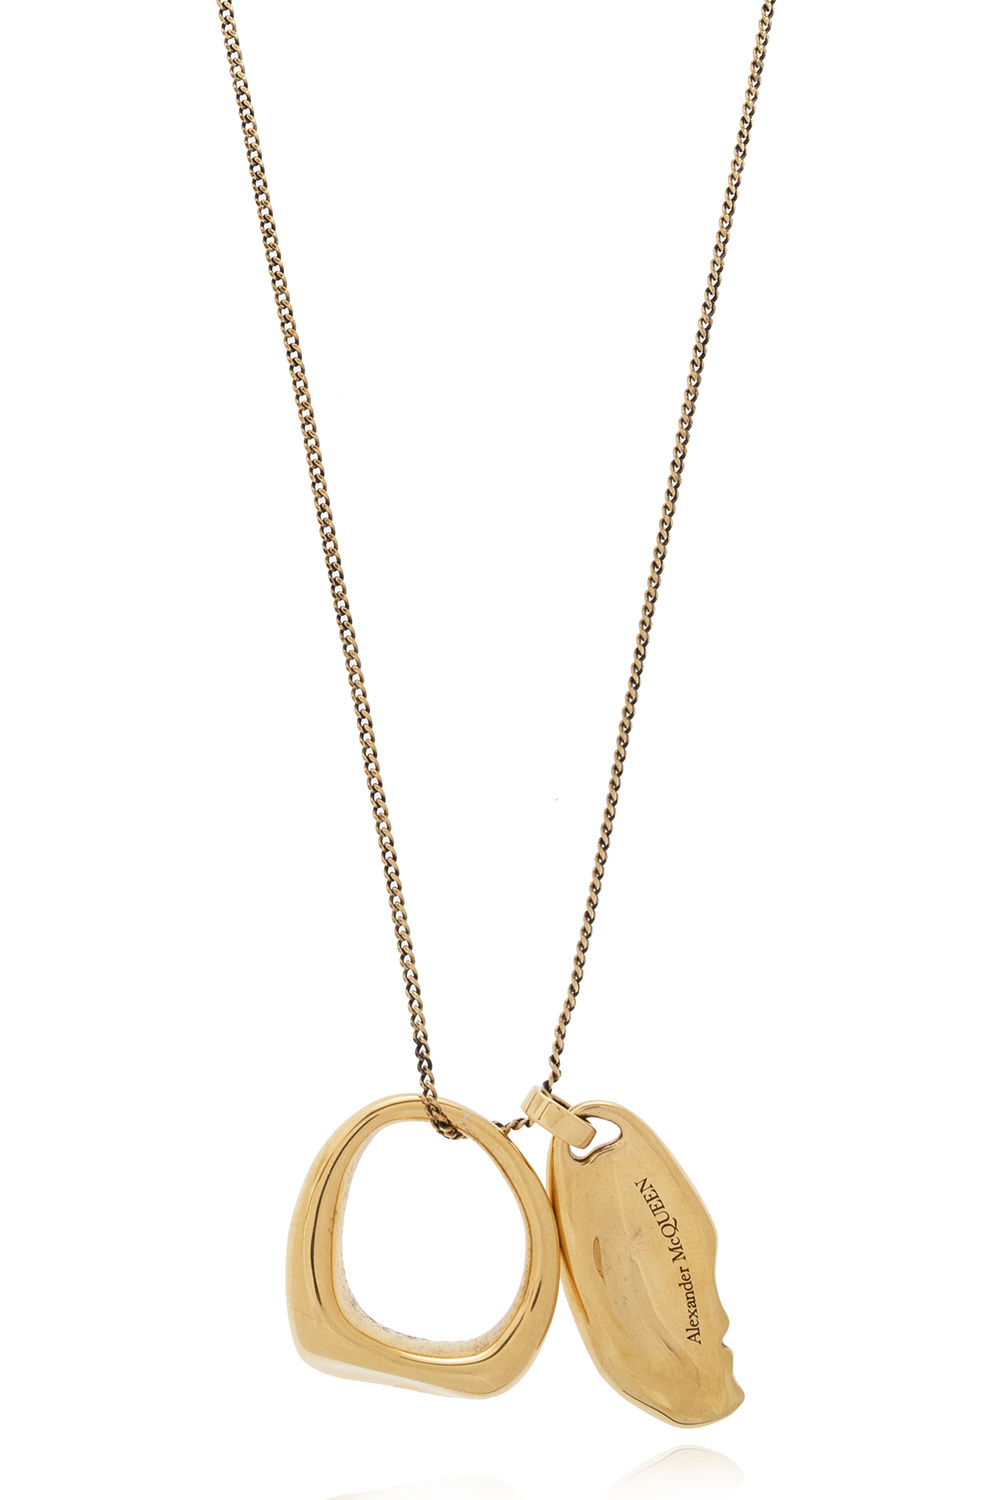 Alexander McQueen Necklace with charms